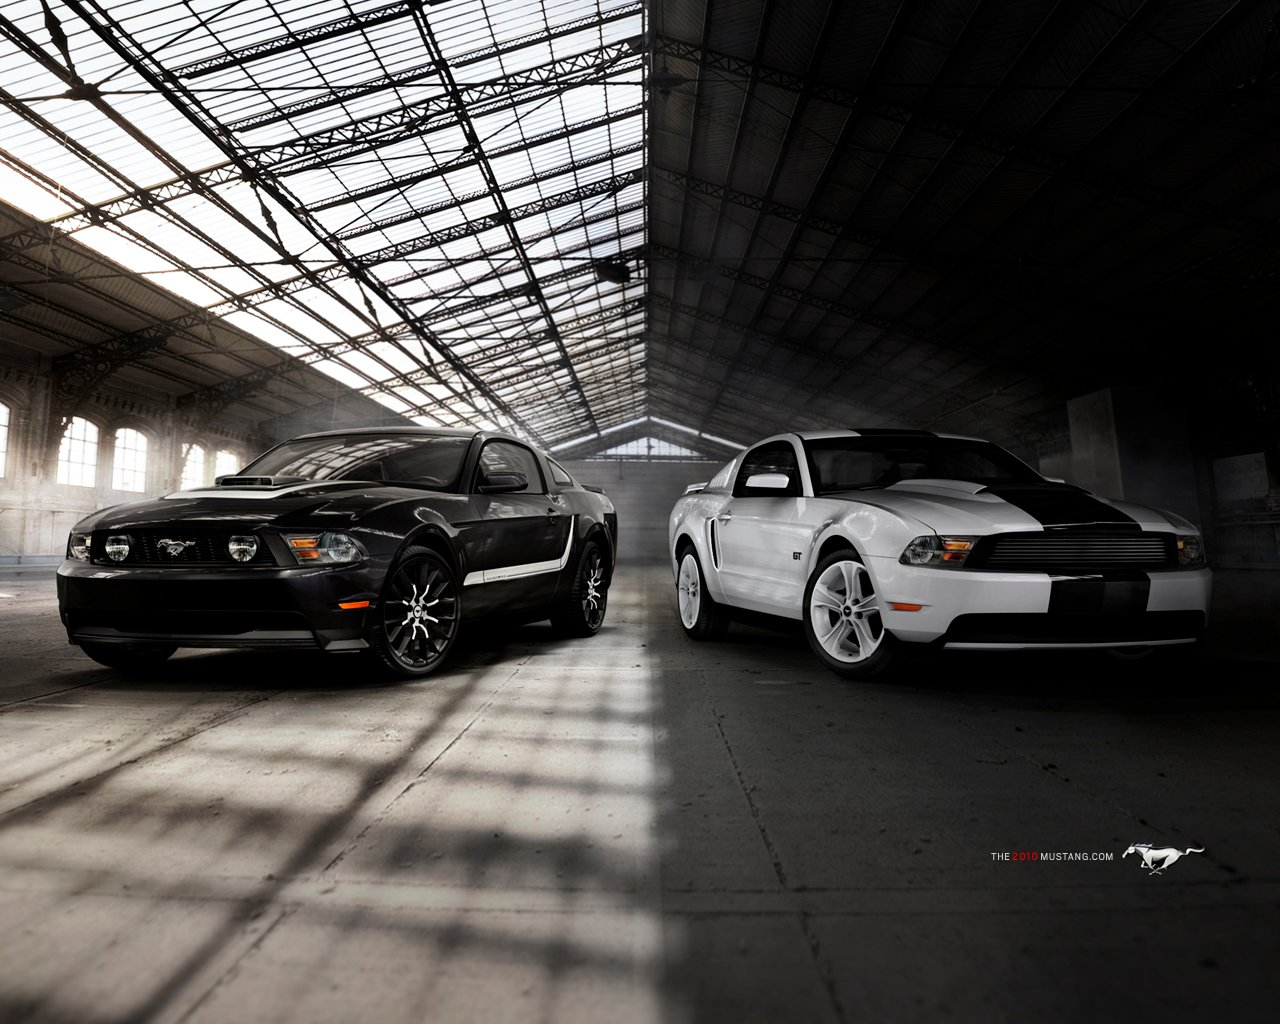 Ford Mustang 2010 ScreenSaver   ScreensaverBasecom 1280x1024